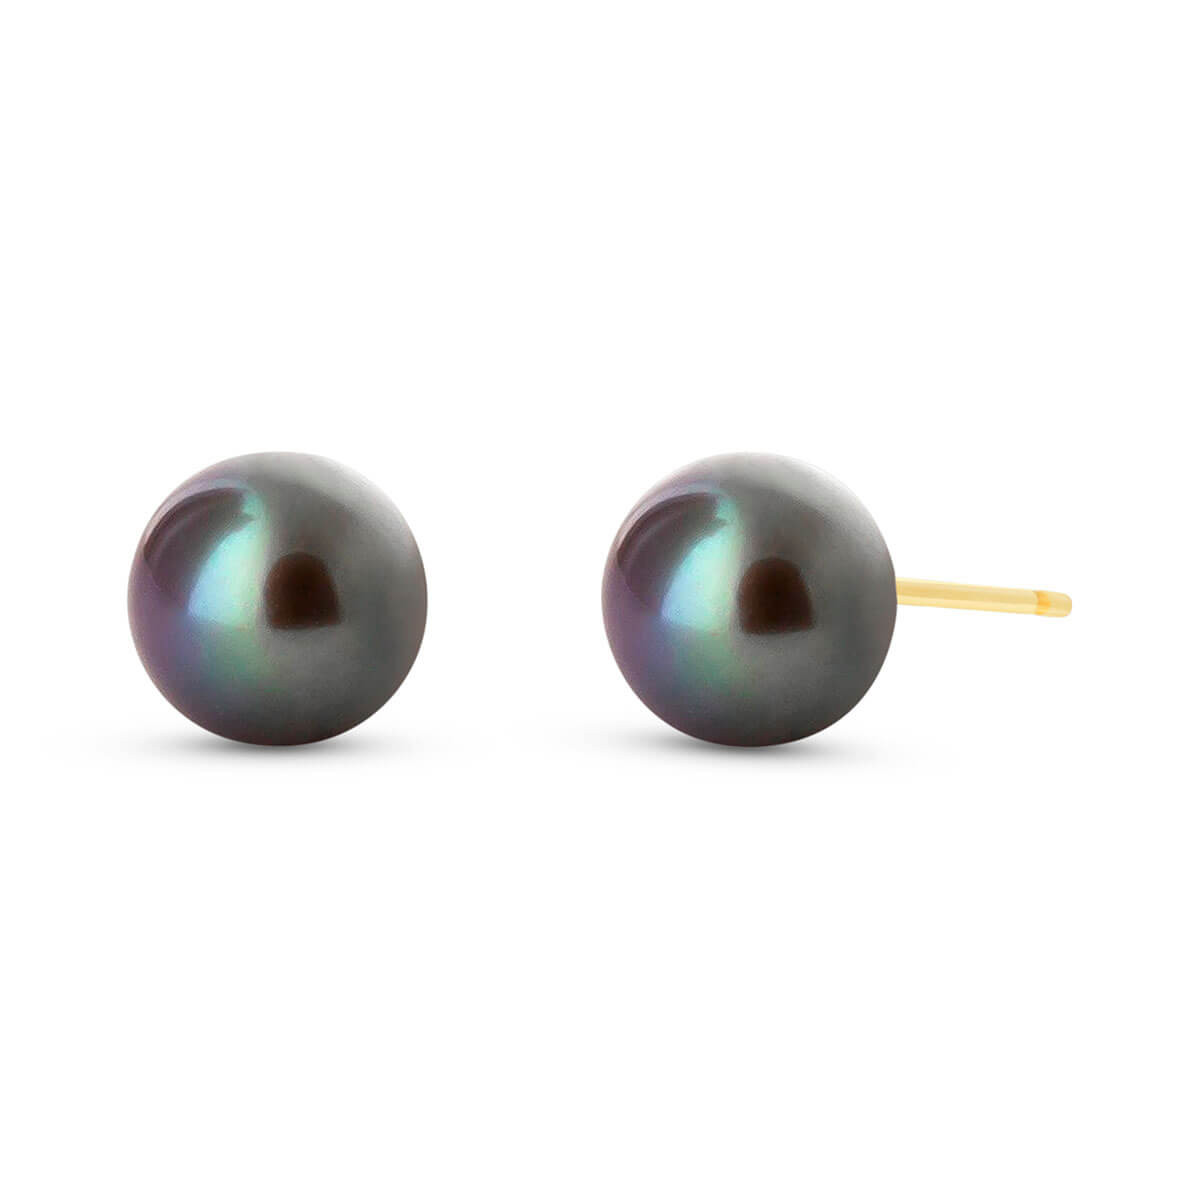 Black Pearl Stud Earrings 4 ctw in 9ct Gold